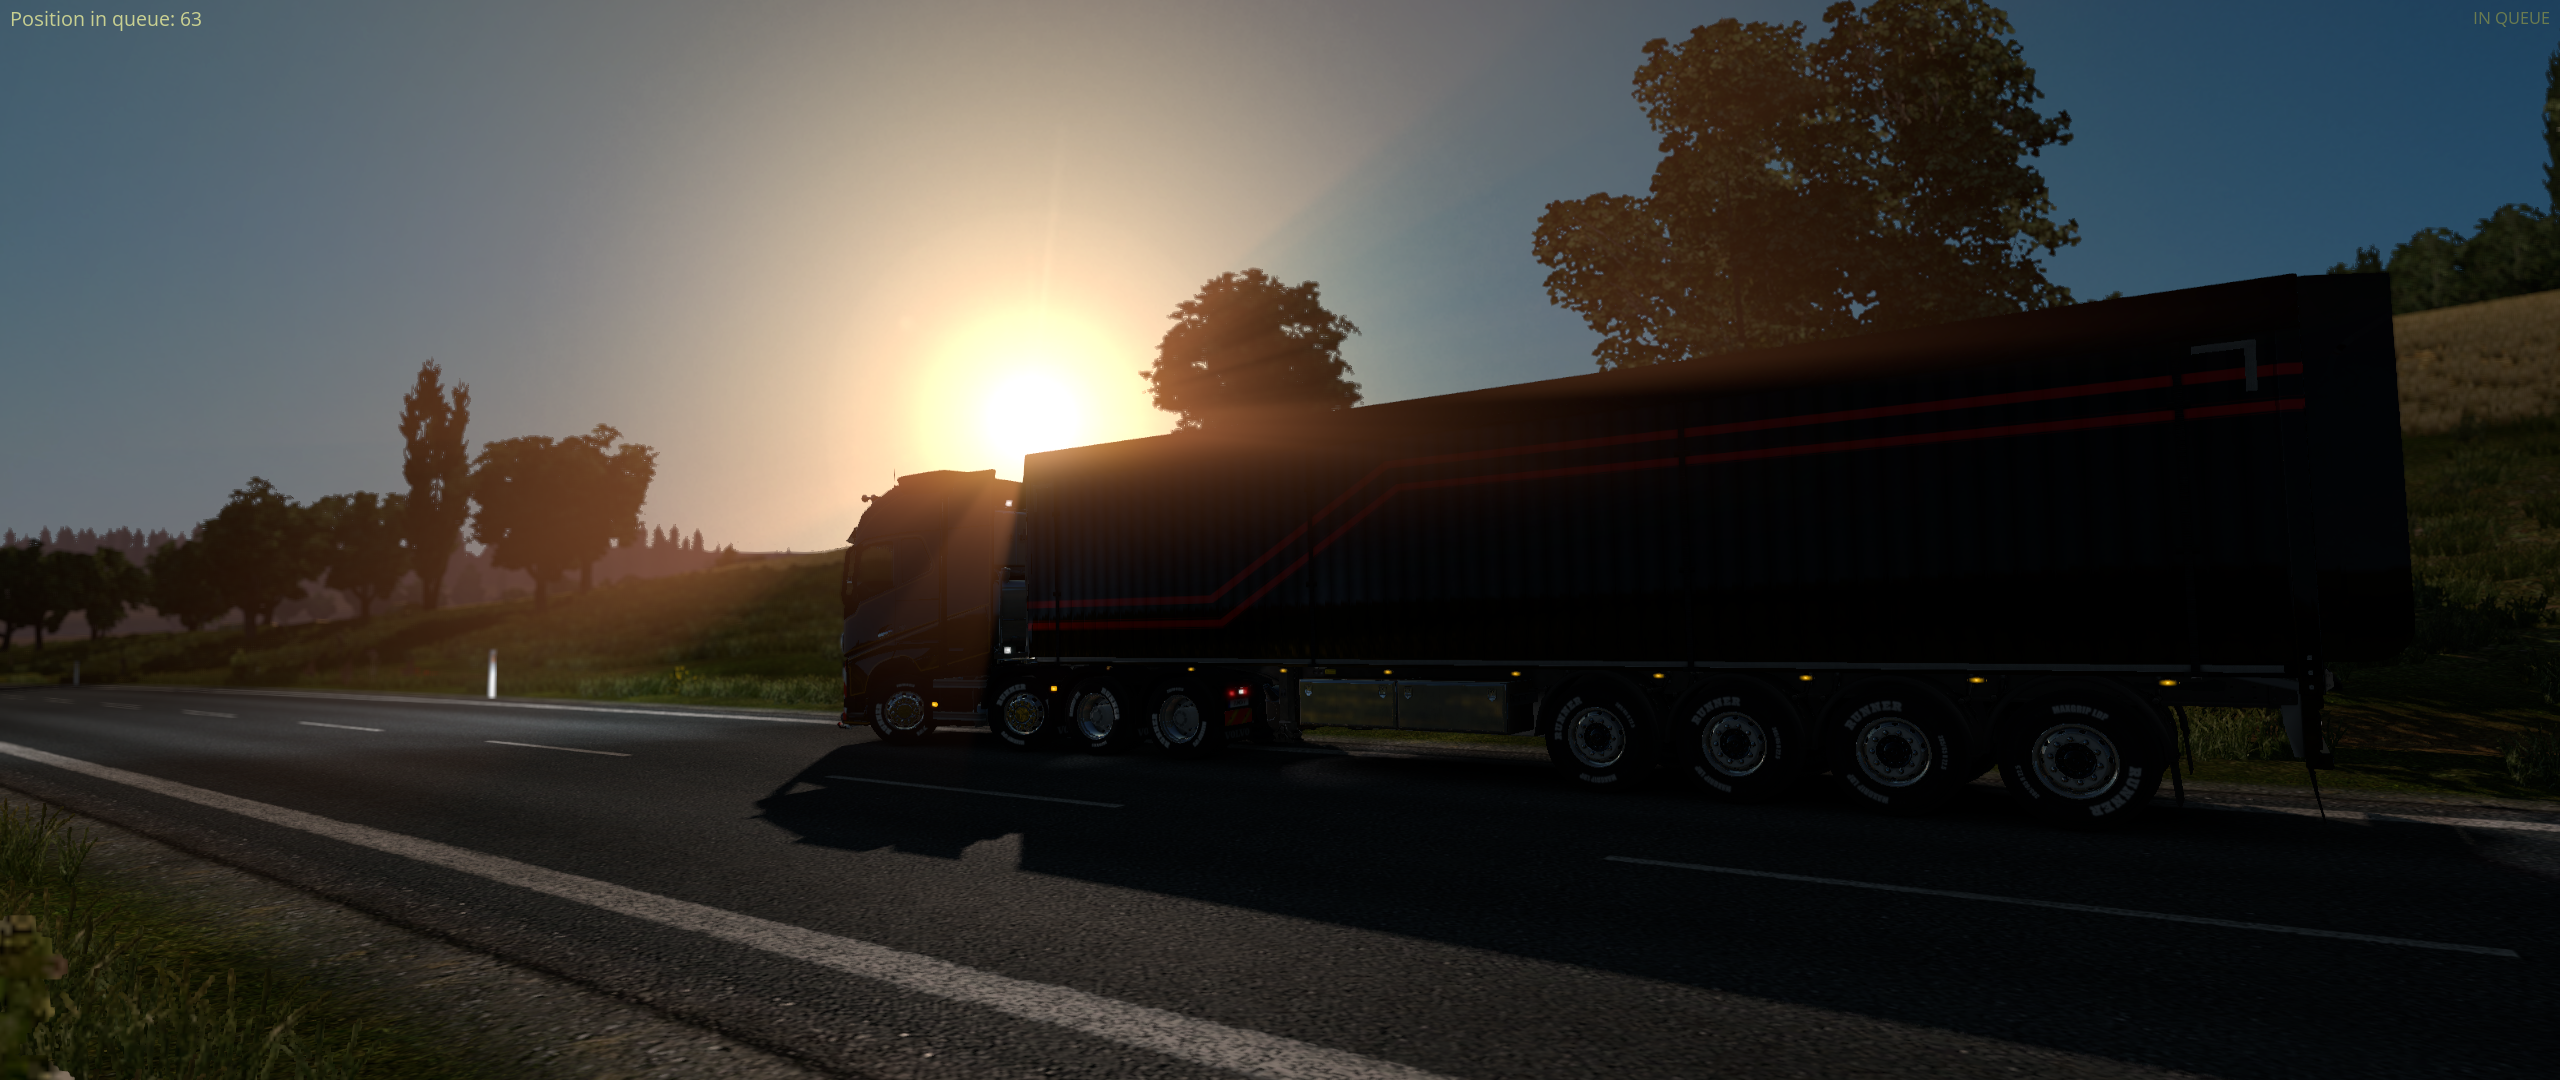 ets2_20190109_192141_00.png